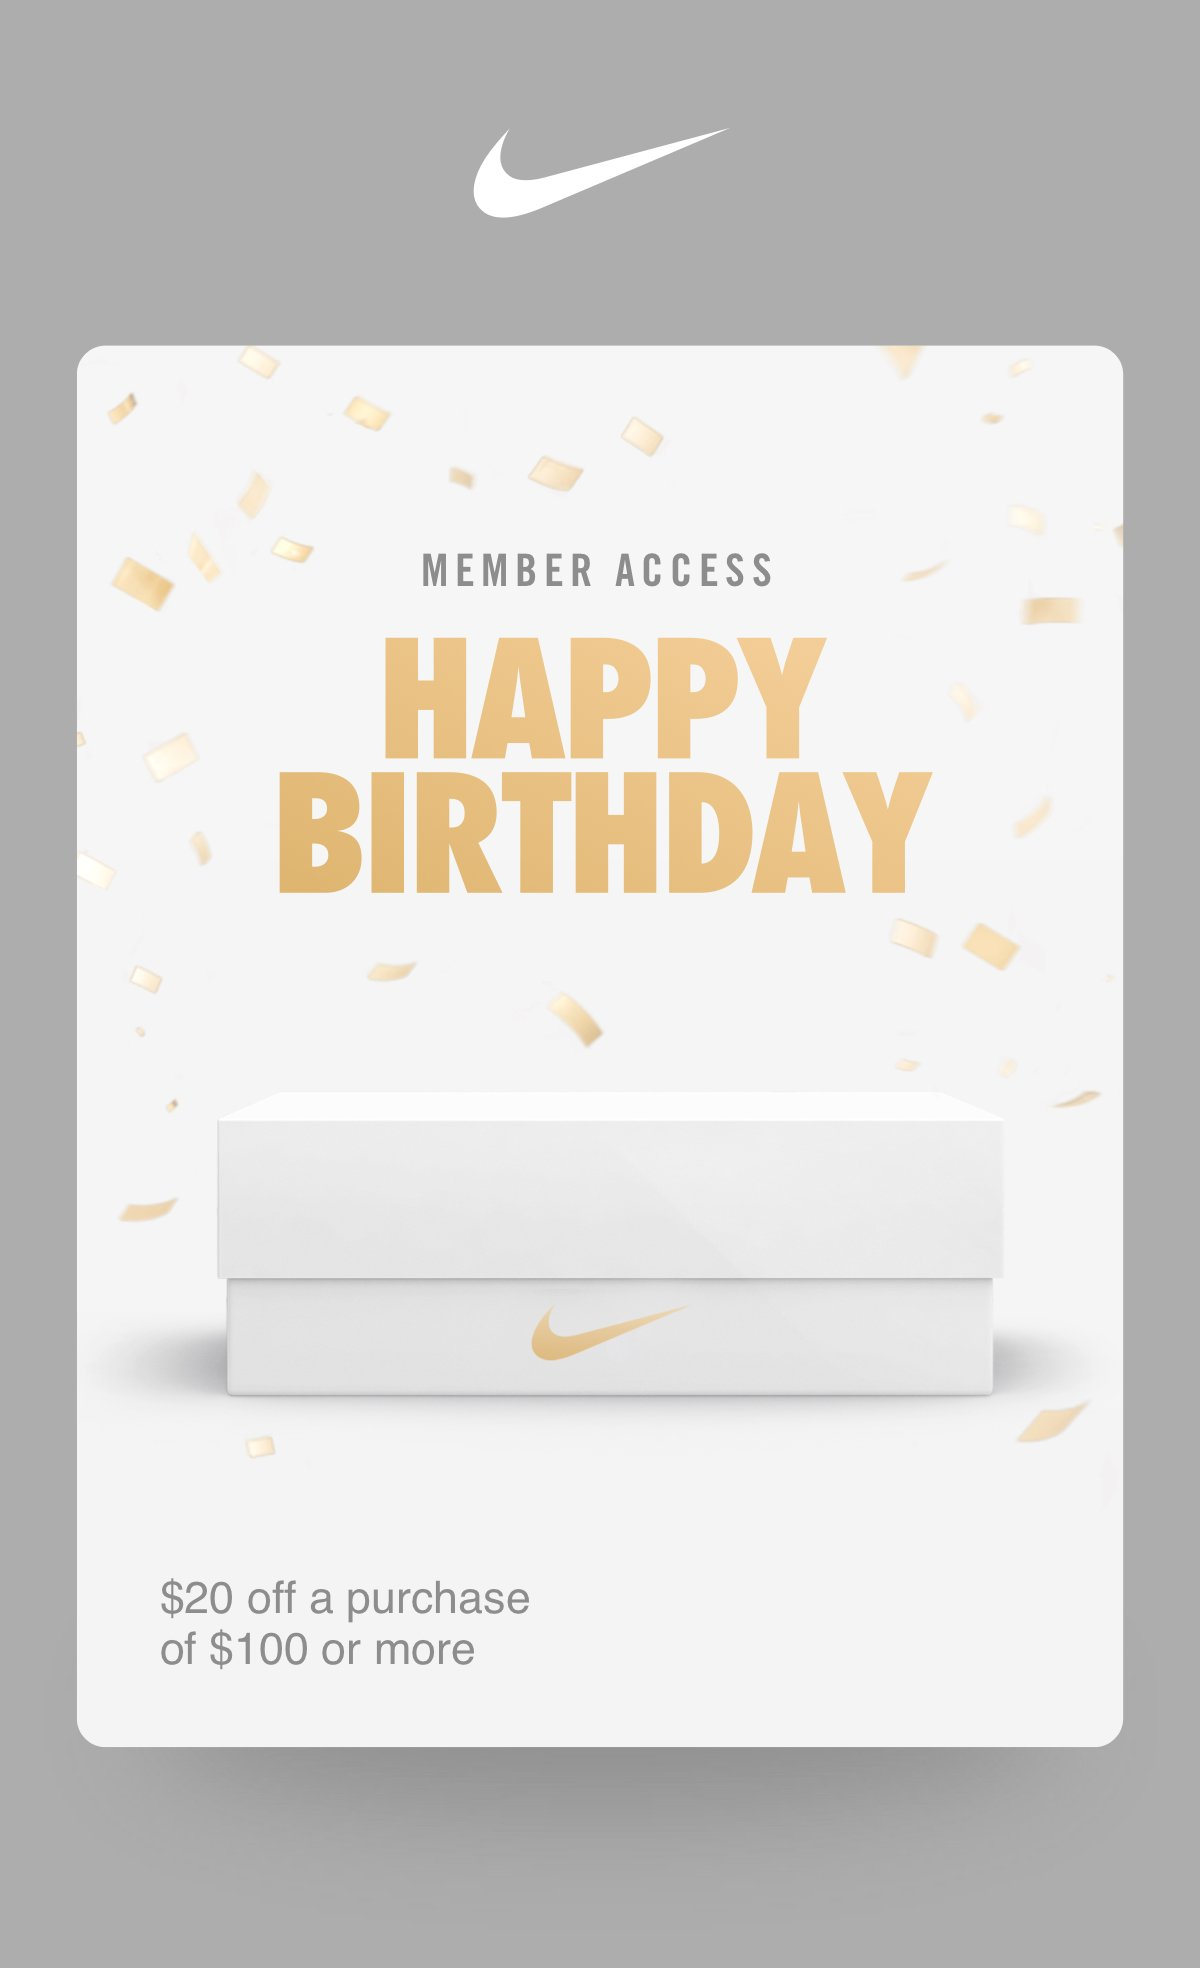 With Amazing Athletes This Month And Since Youre A NikePlus Member Were Giving You The Perfect Excuse To Treat Yourself Heres Birthday Unlock For